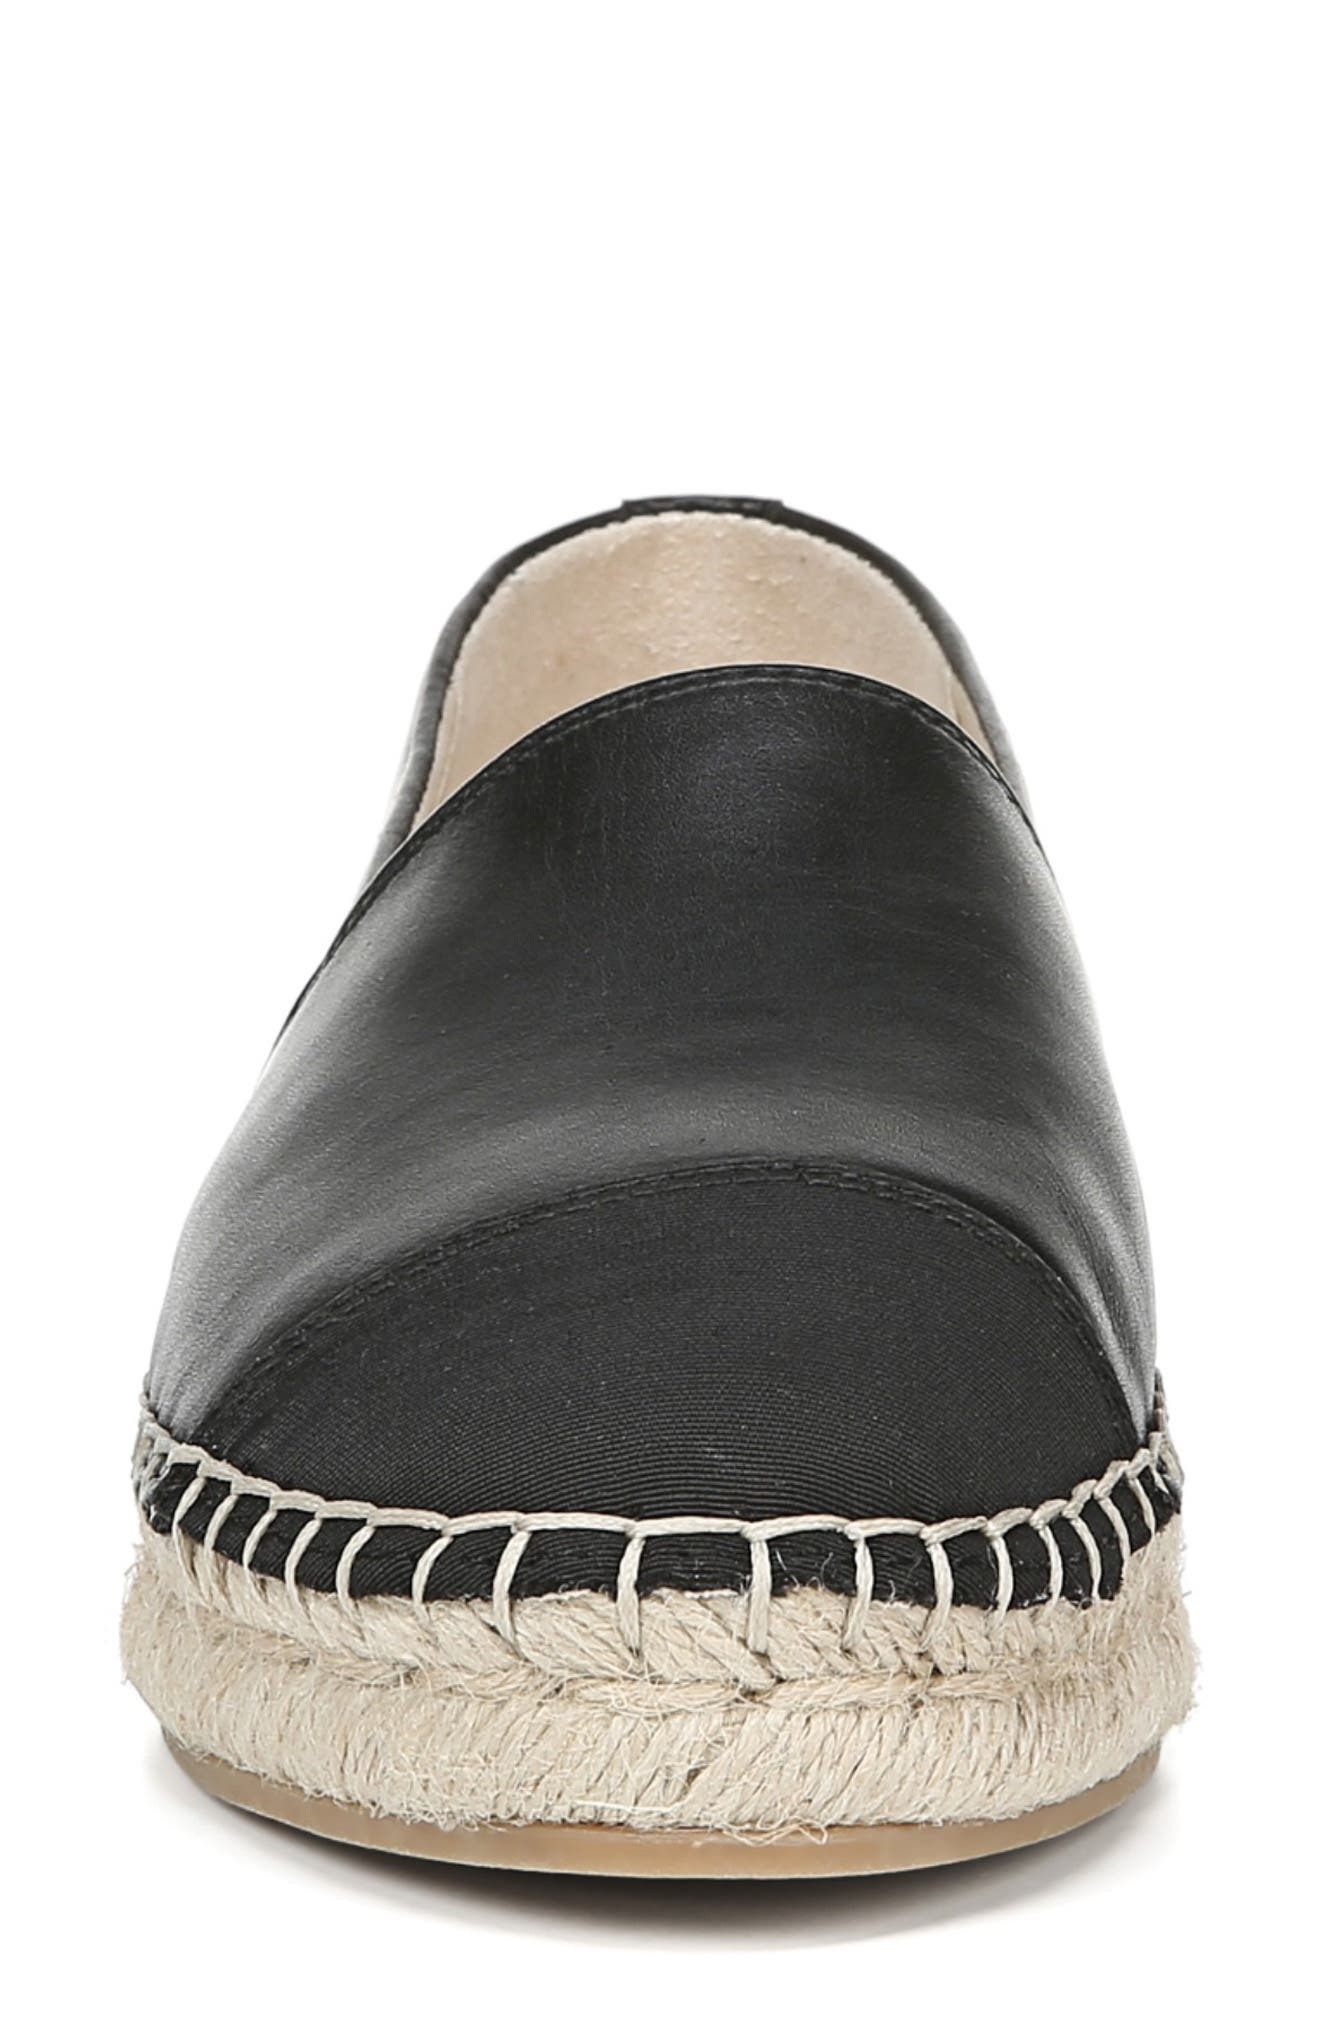 SAM EDELMAN, Krissy Espadrille Flat, Alternate thumbnail 4, color, BLACK LEATHER